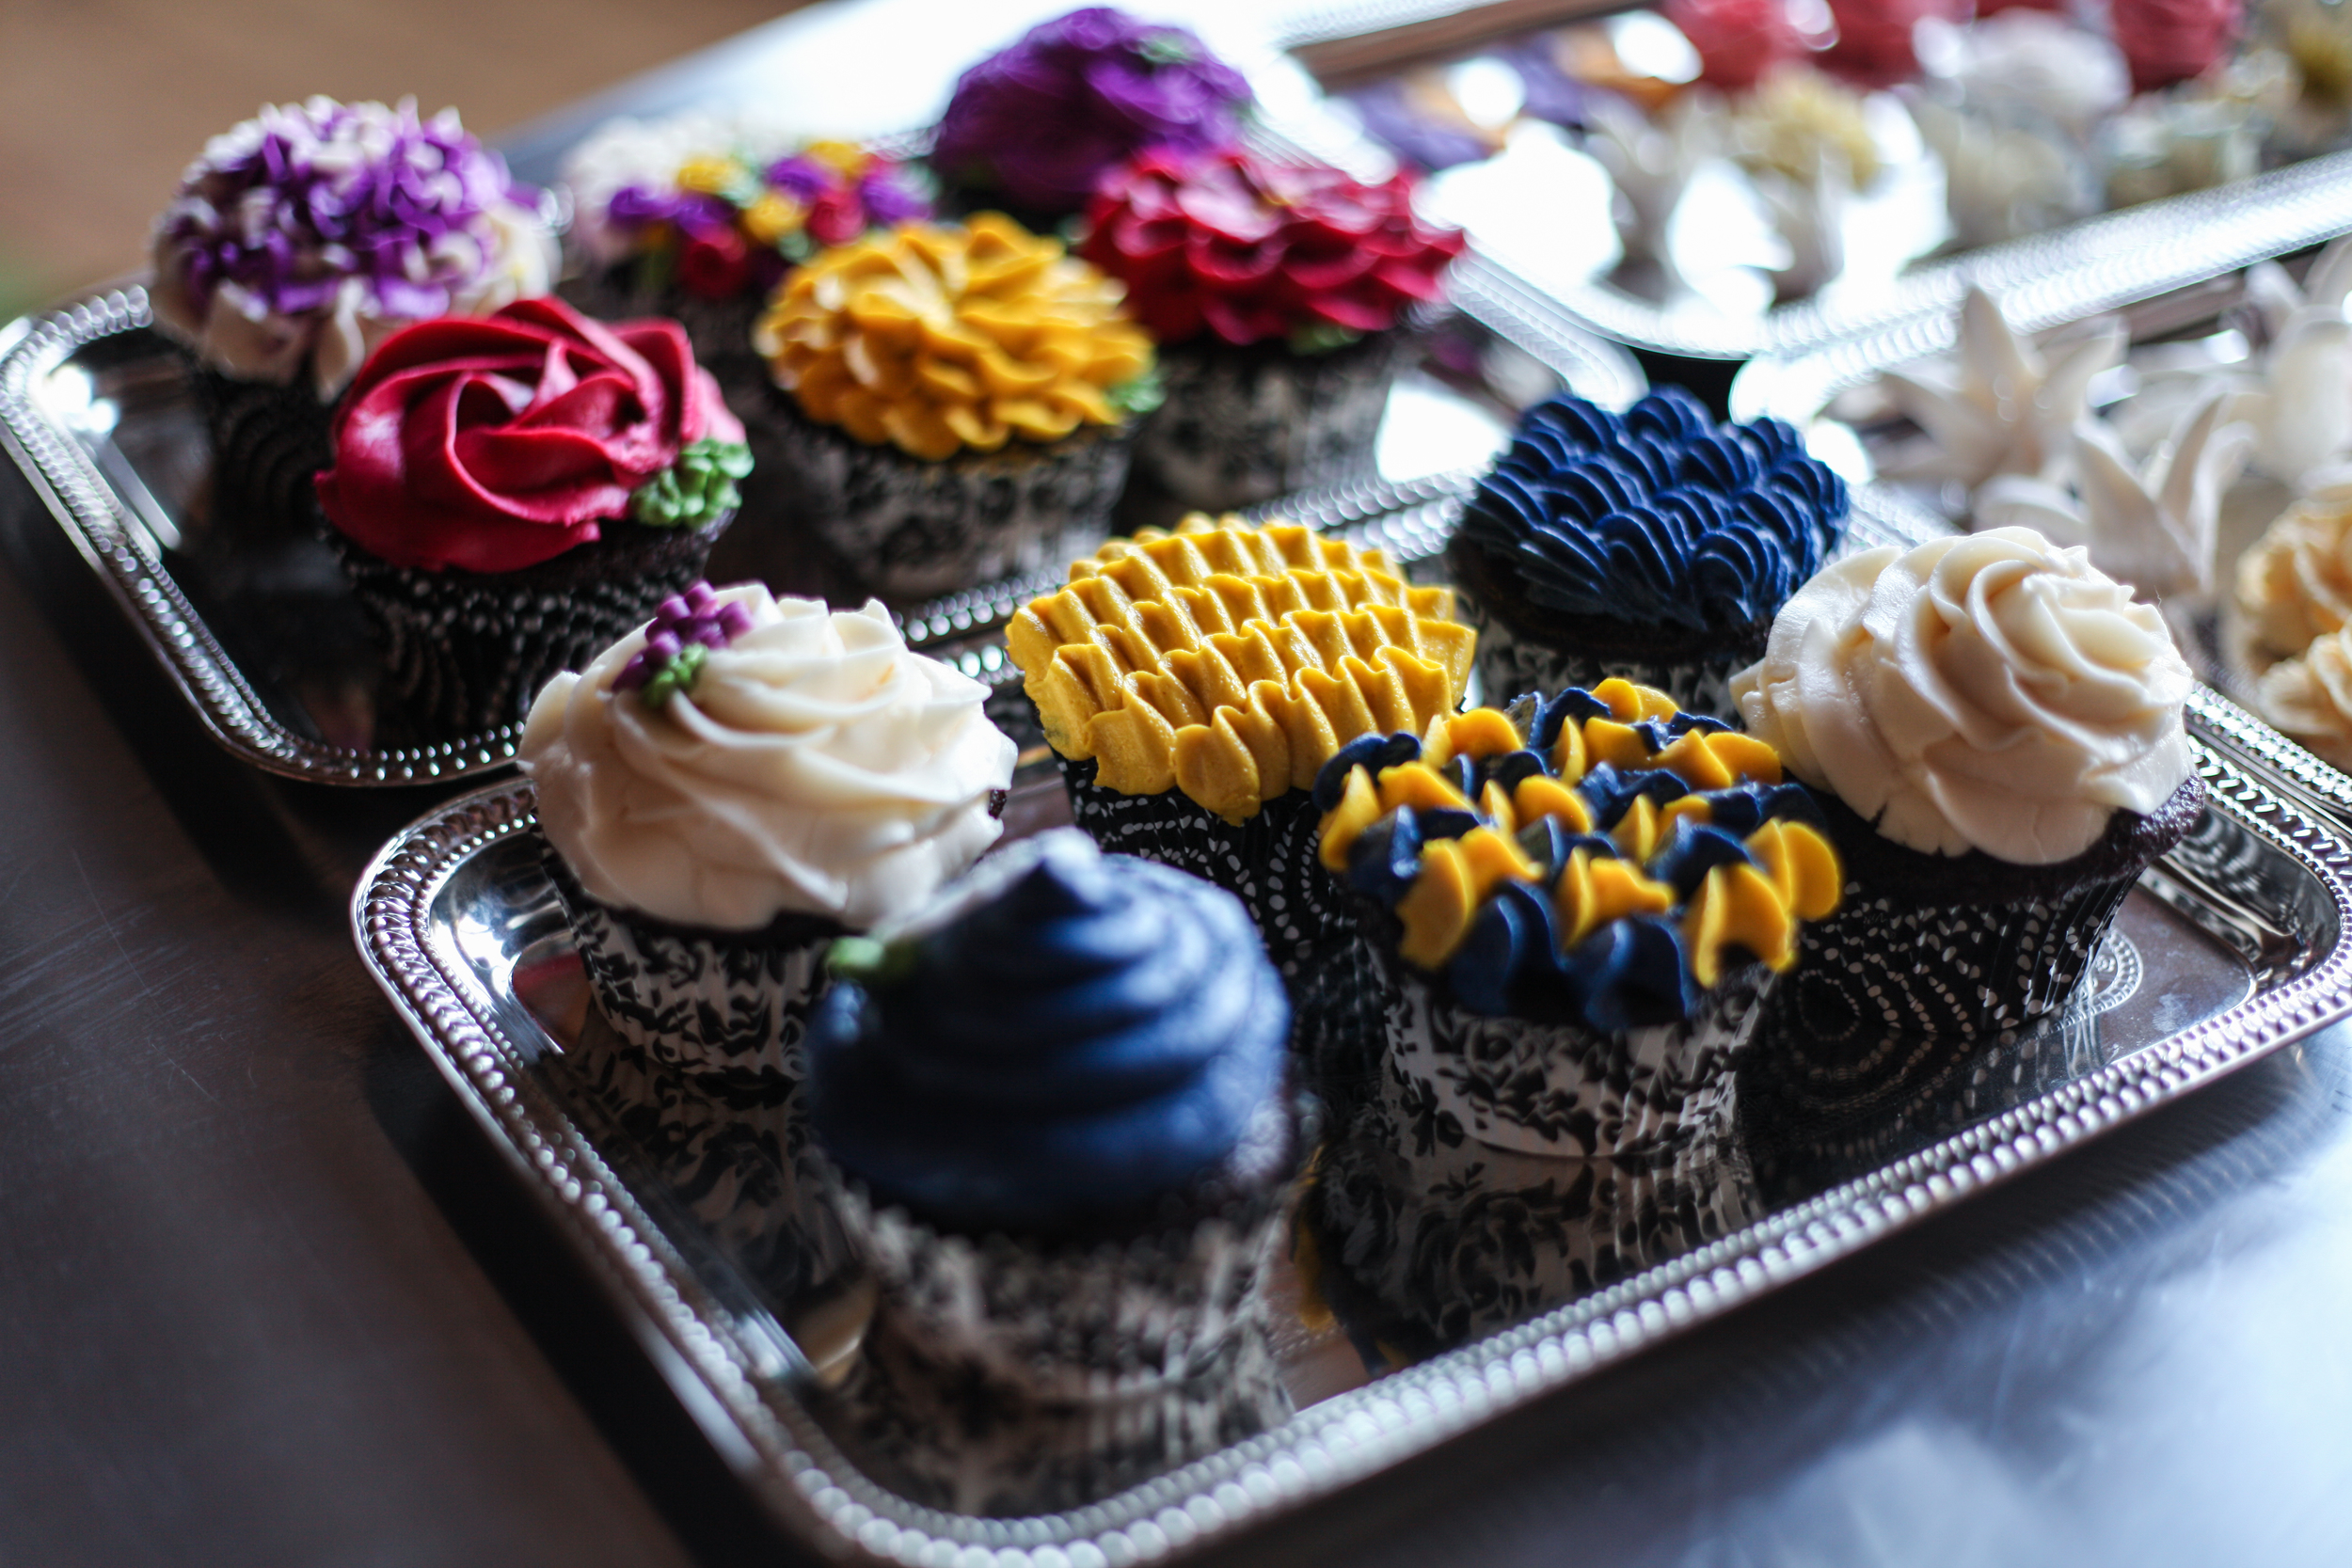 Yoga+_caketacular-cupcake-decorating-at-nourishing-notes-54.jpg